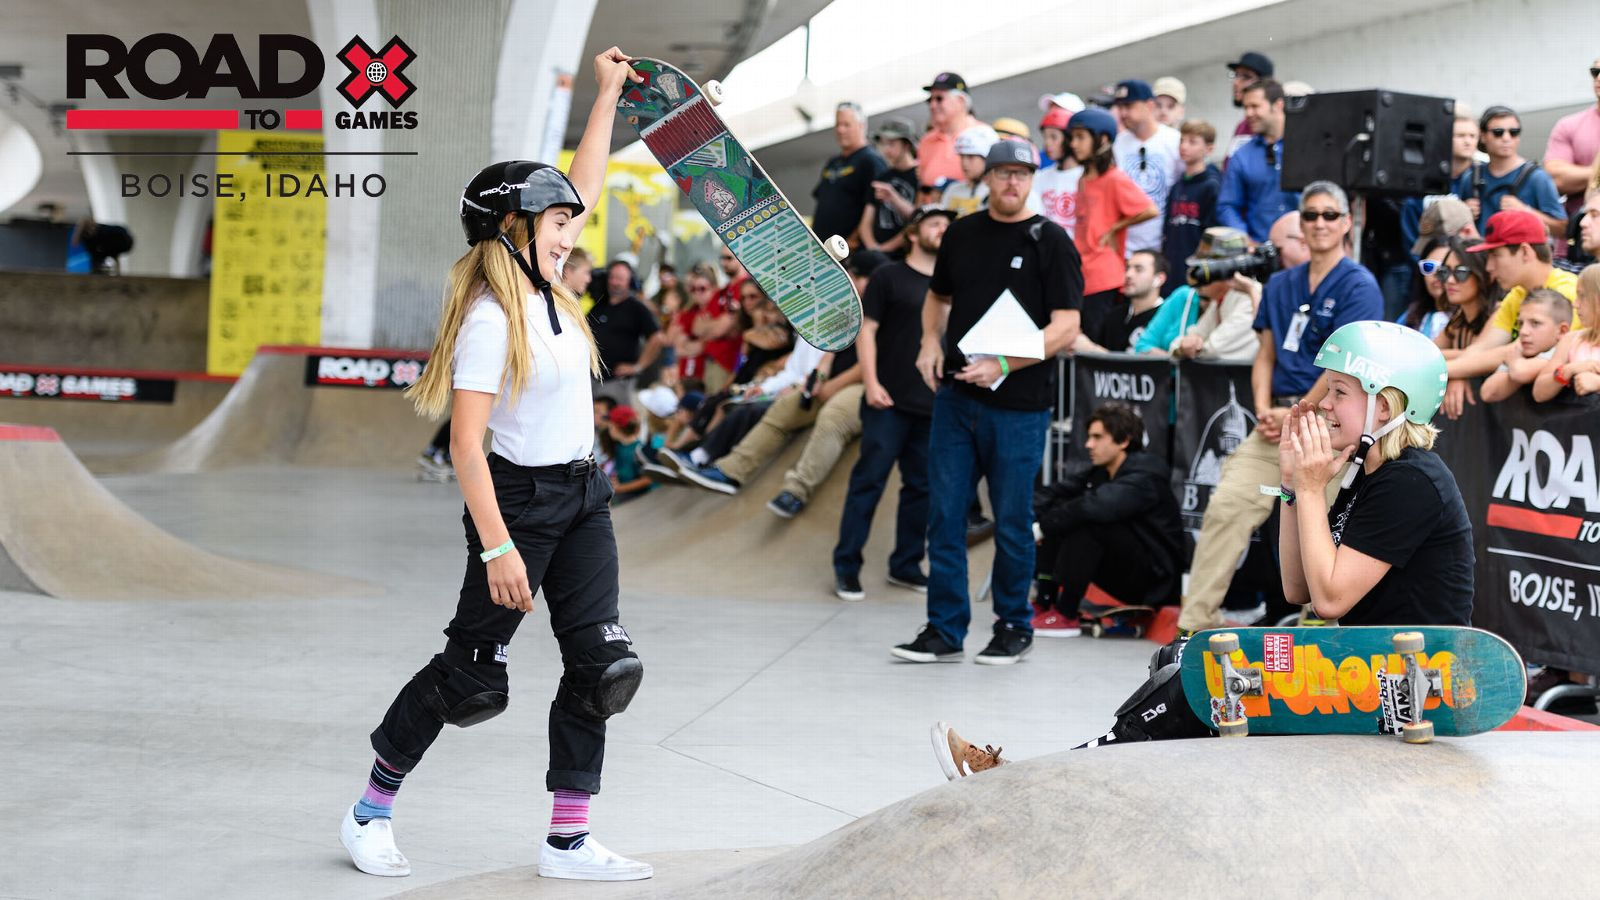 Roller skating x games - X Games And Action Sports Videos Photos Athletes Events Original Series News And More